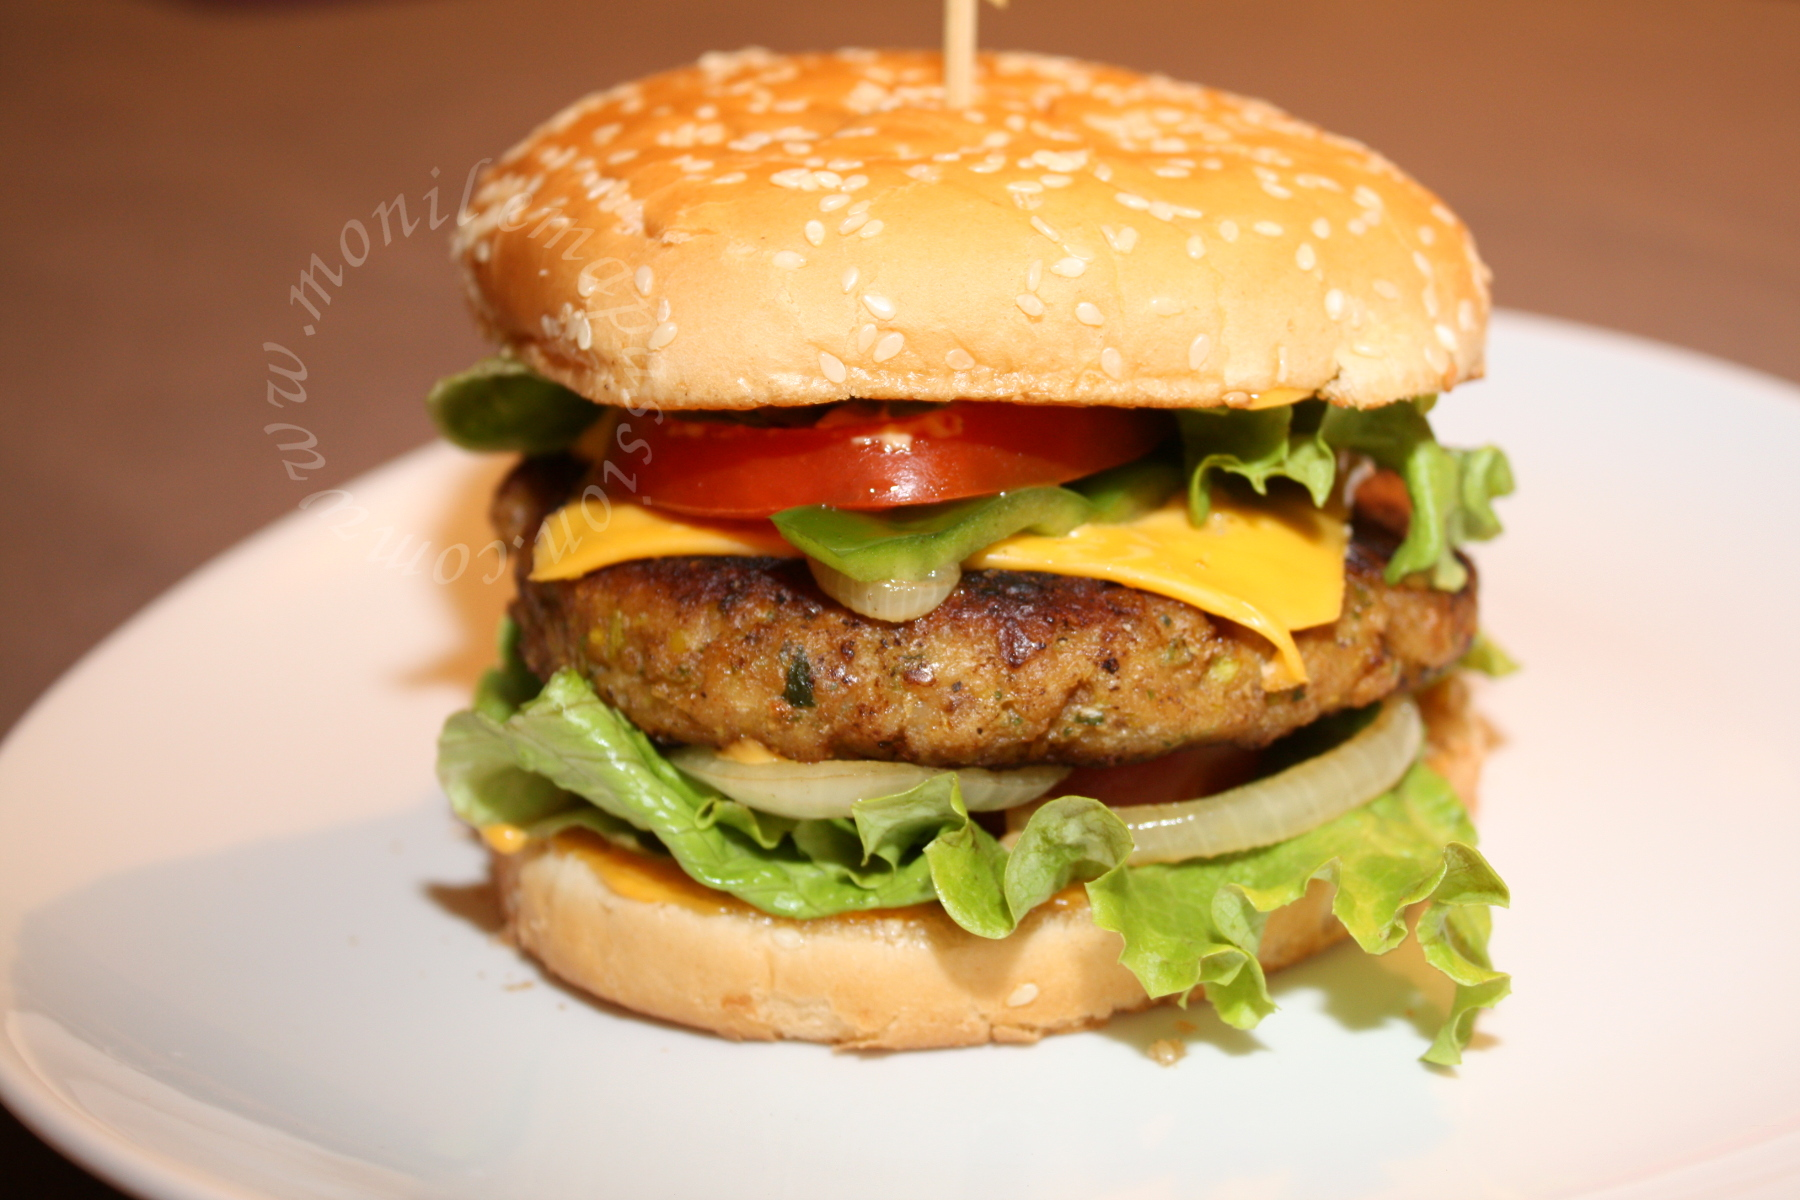 Steaks hachés de poulet maison – Homemade chicken burger patties